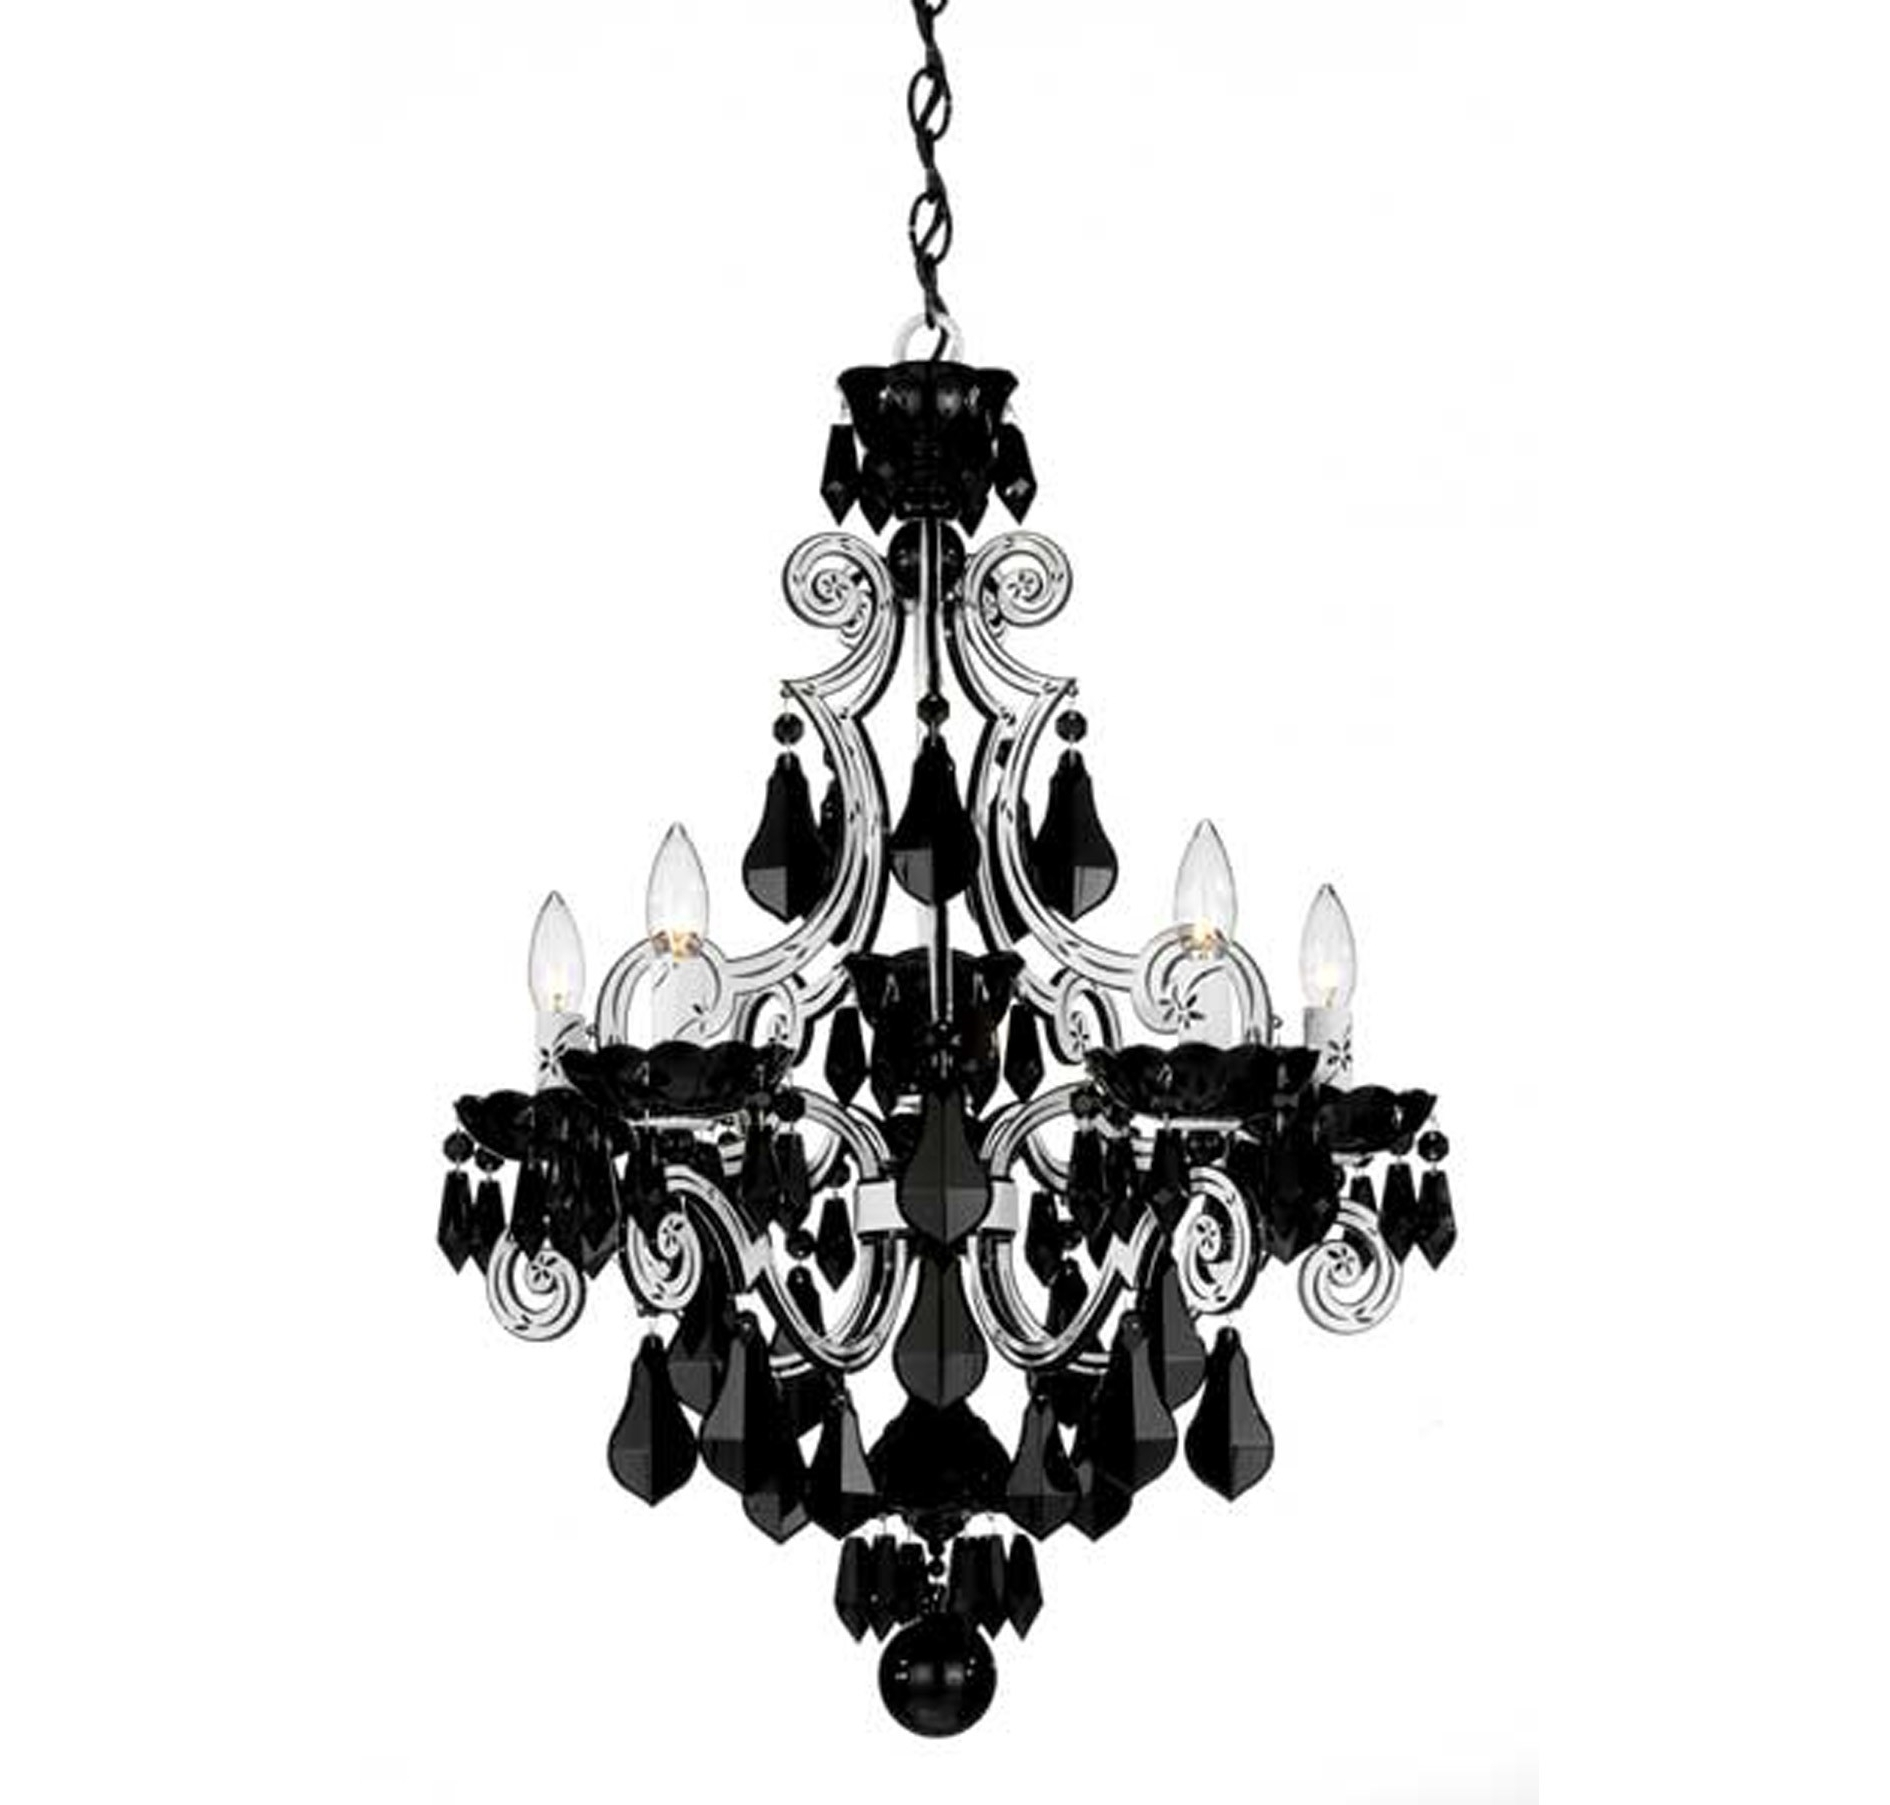 Glass Droplet Chandelier With Regard To Trendy Light : Alluring Clear White Black Glass Crystal Chandelier Metal (View 7 of 15)